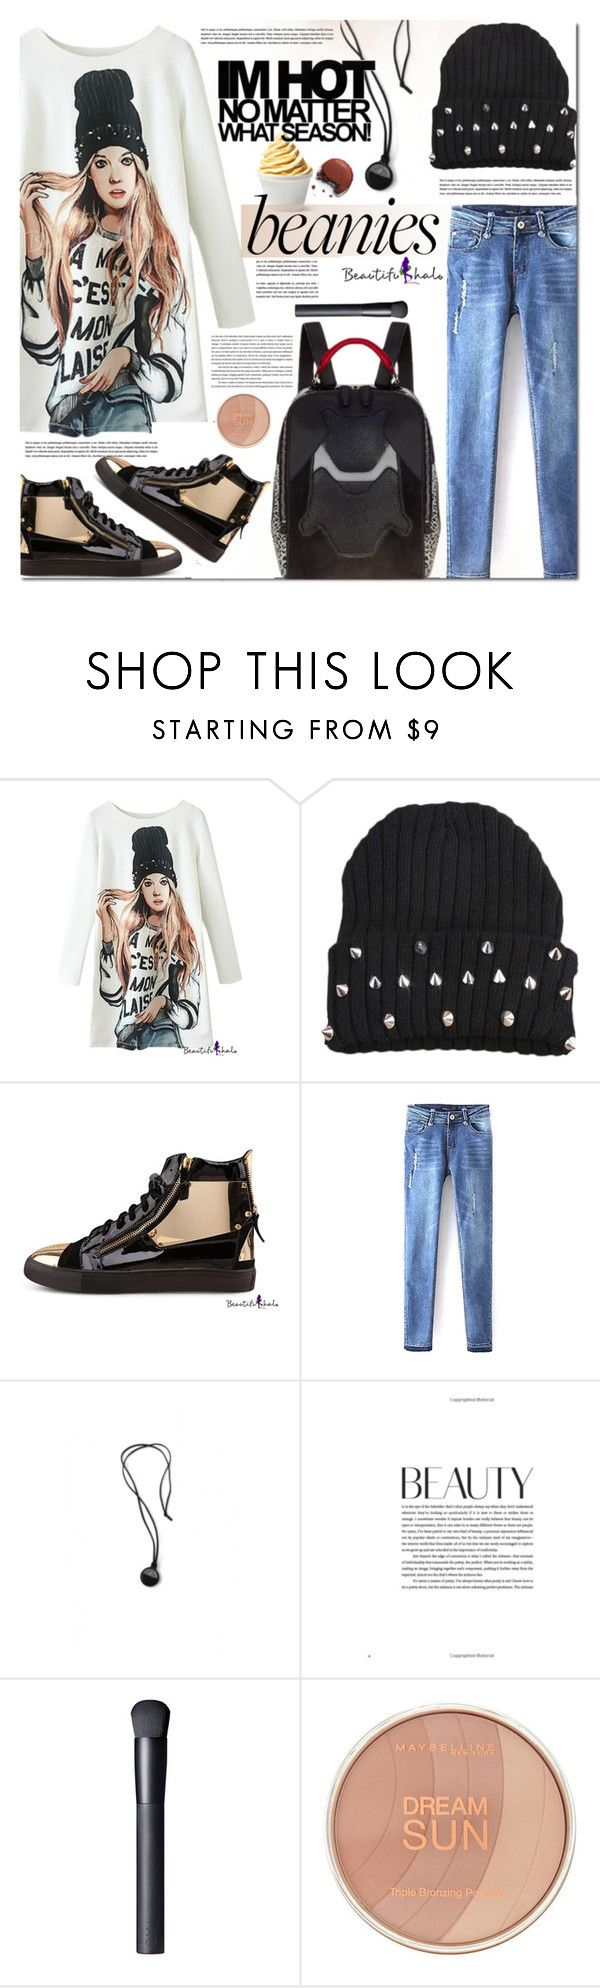 """""""Hat Head: Beanies beautifulhalo"""" by barbarela11 ❤ liked on Polyvore featuring Disney, NARS Cosmetics, Maybelline, beanies and bhalo"""